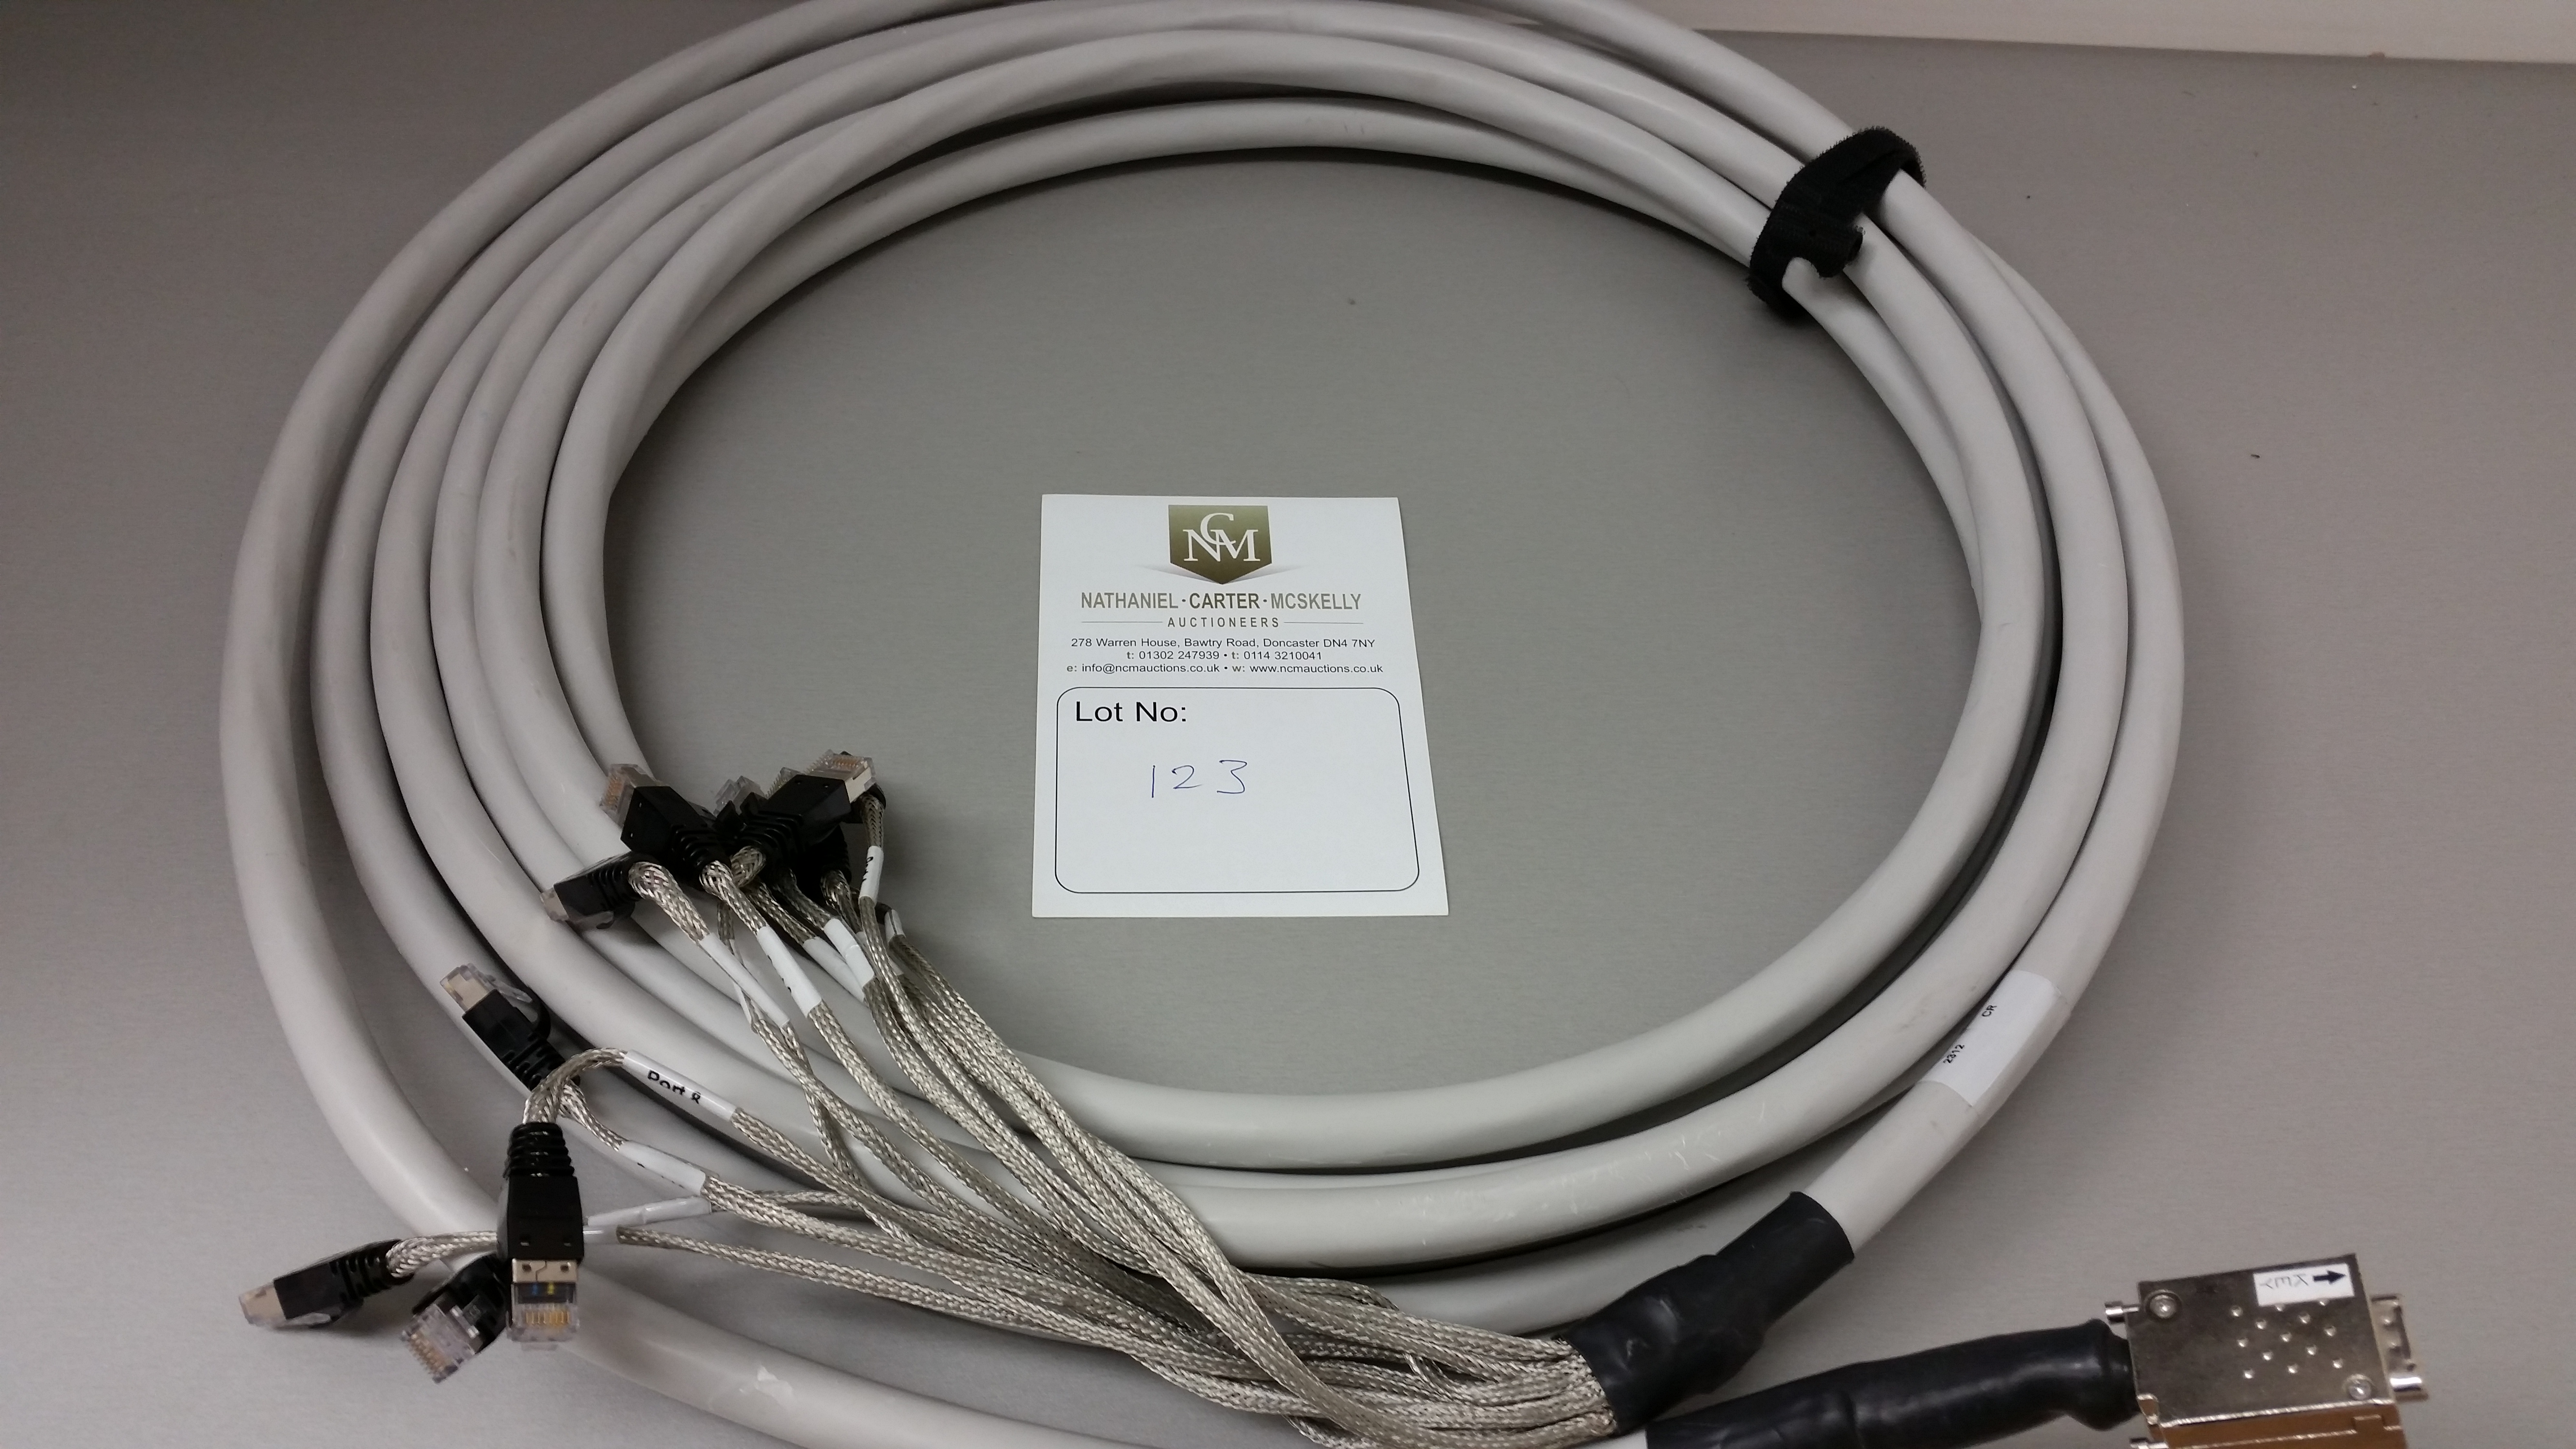 Pleasant Make Tyco Electronics Model Cable 10 100 Cable Mini Rj21 To Wiring Cloud Geisbieswglorg